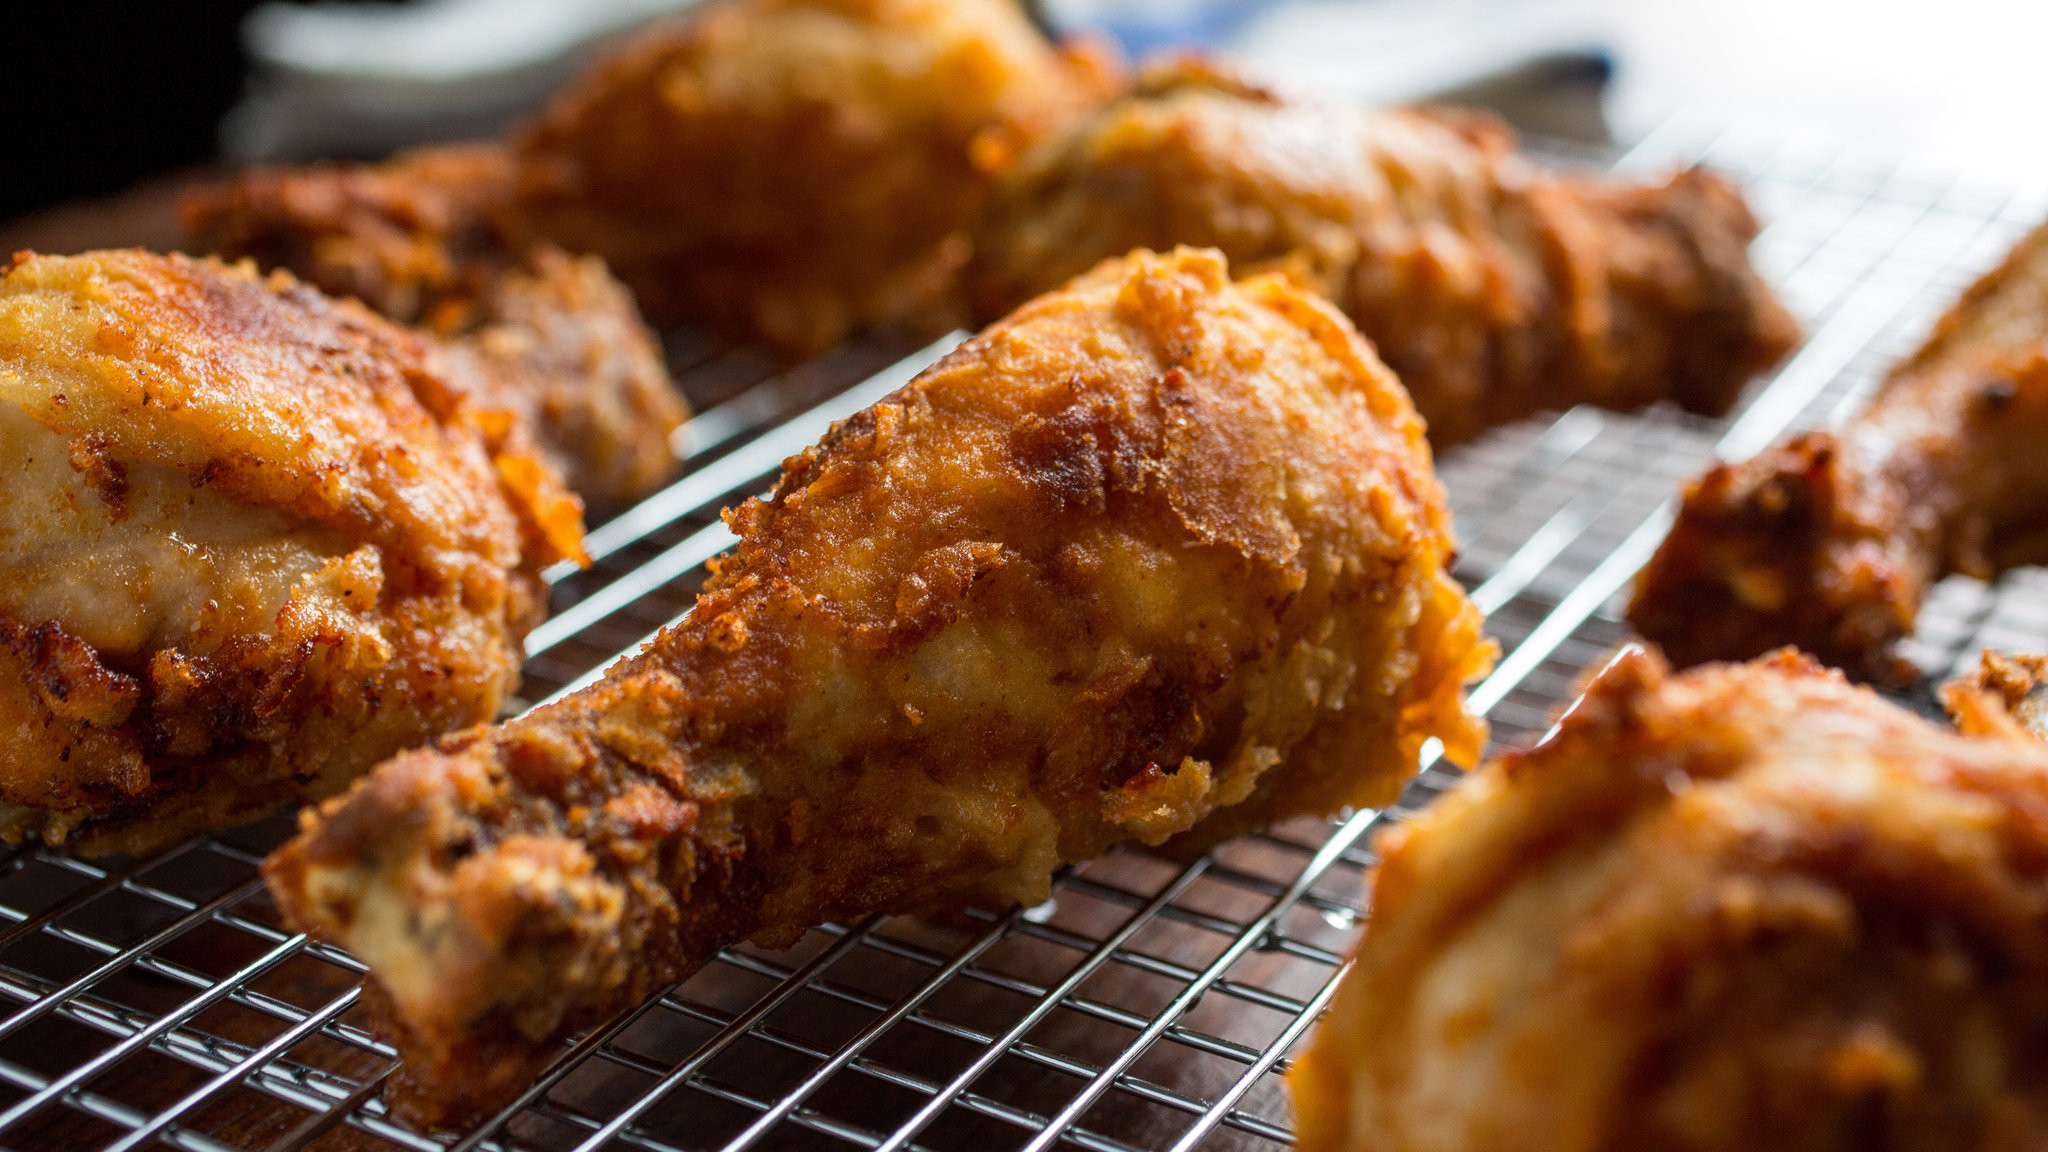 Making Fried Chicken  Make Ahead Fried Chicken Recipe NYT Cooking